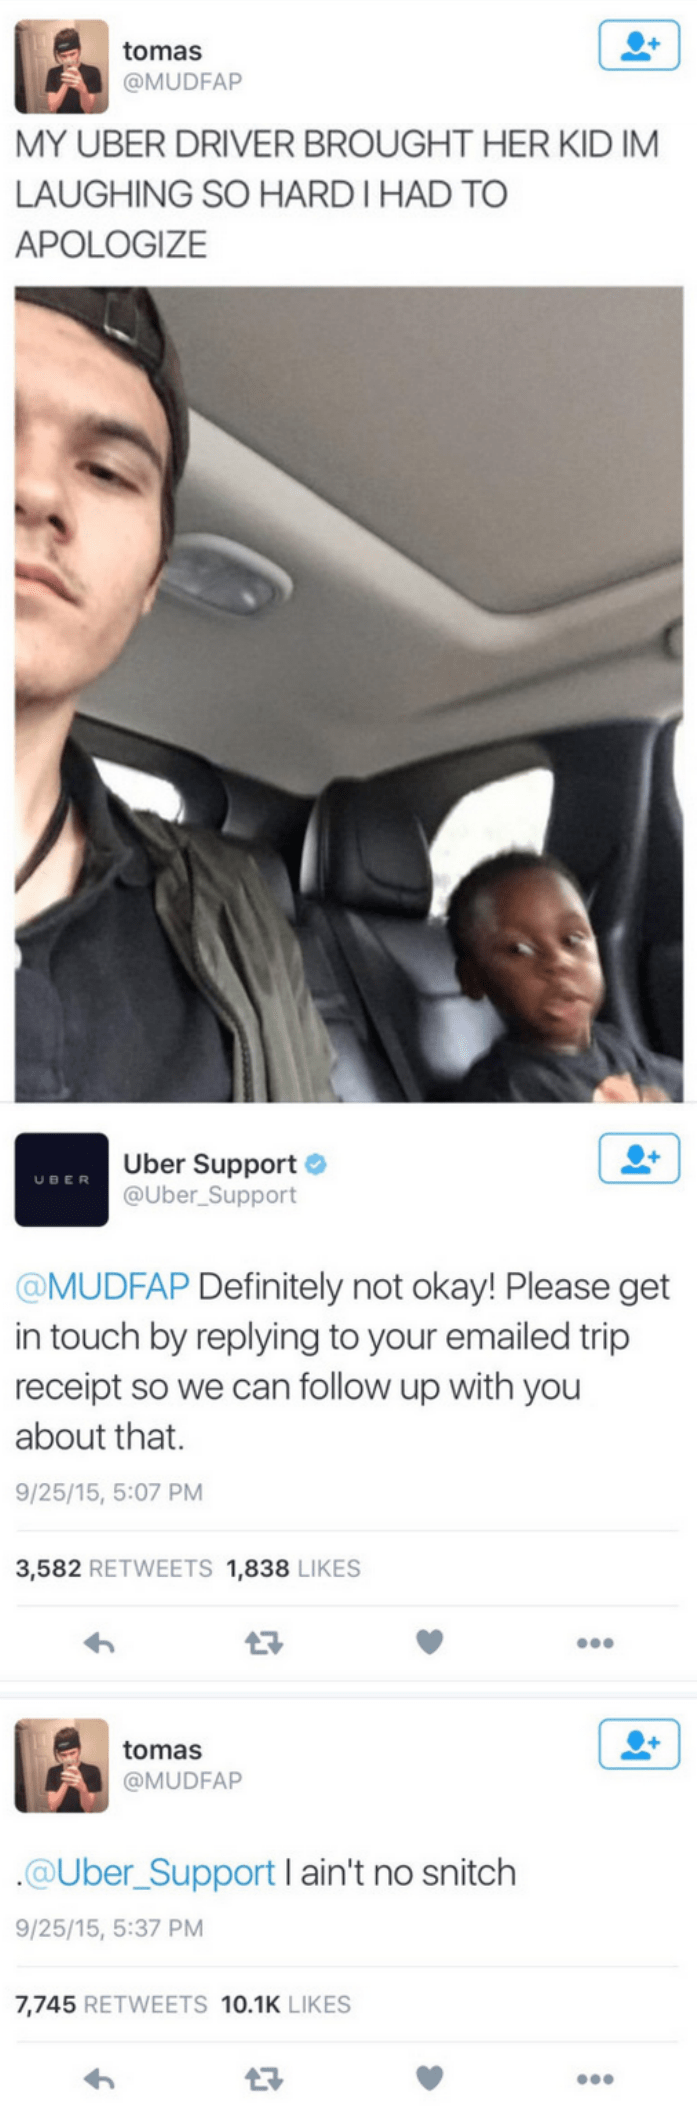 funny parenting image uber driver brings kid and rider doesn't snitch